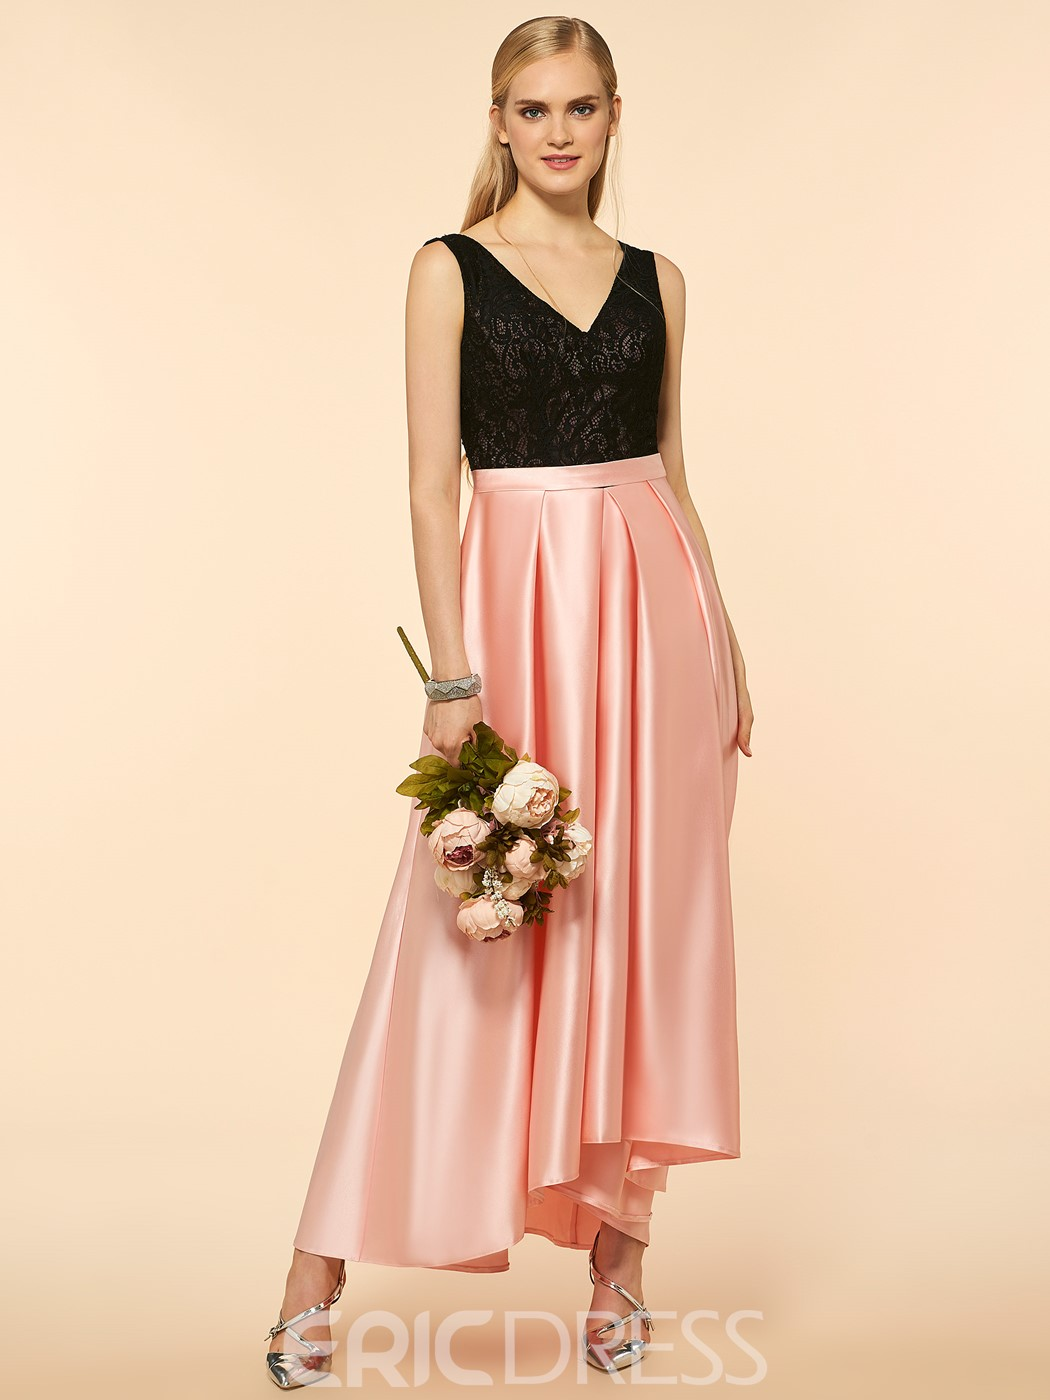 Ericdress Beautiful V Neck Lace A Line High Low Bridesmaid Dress